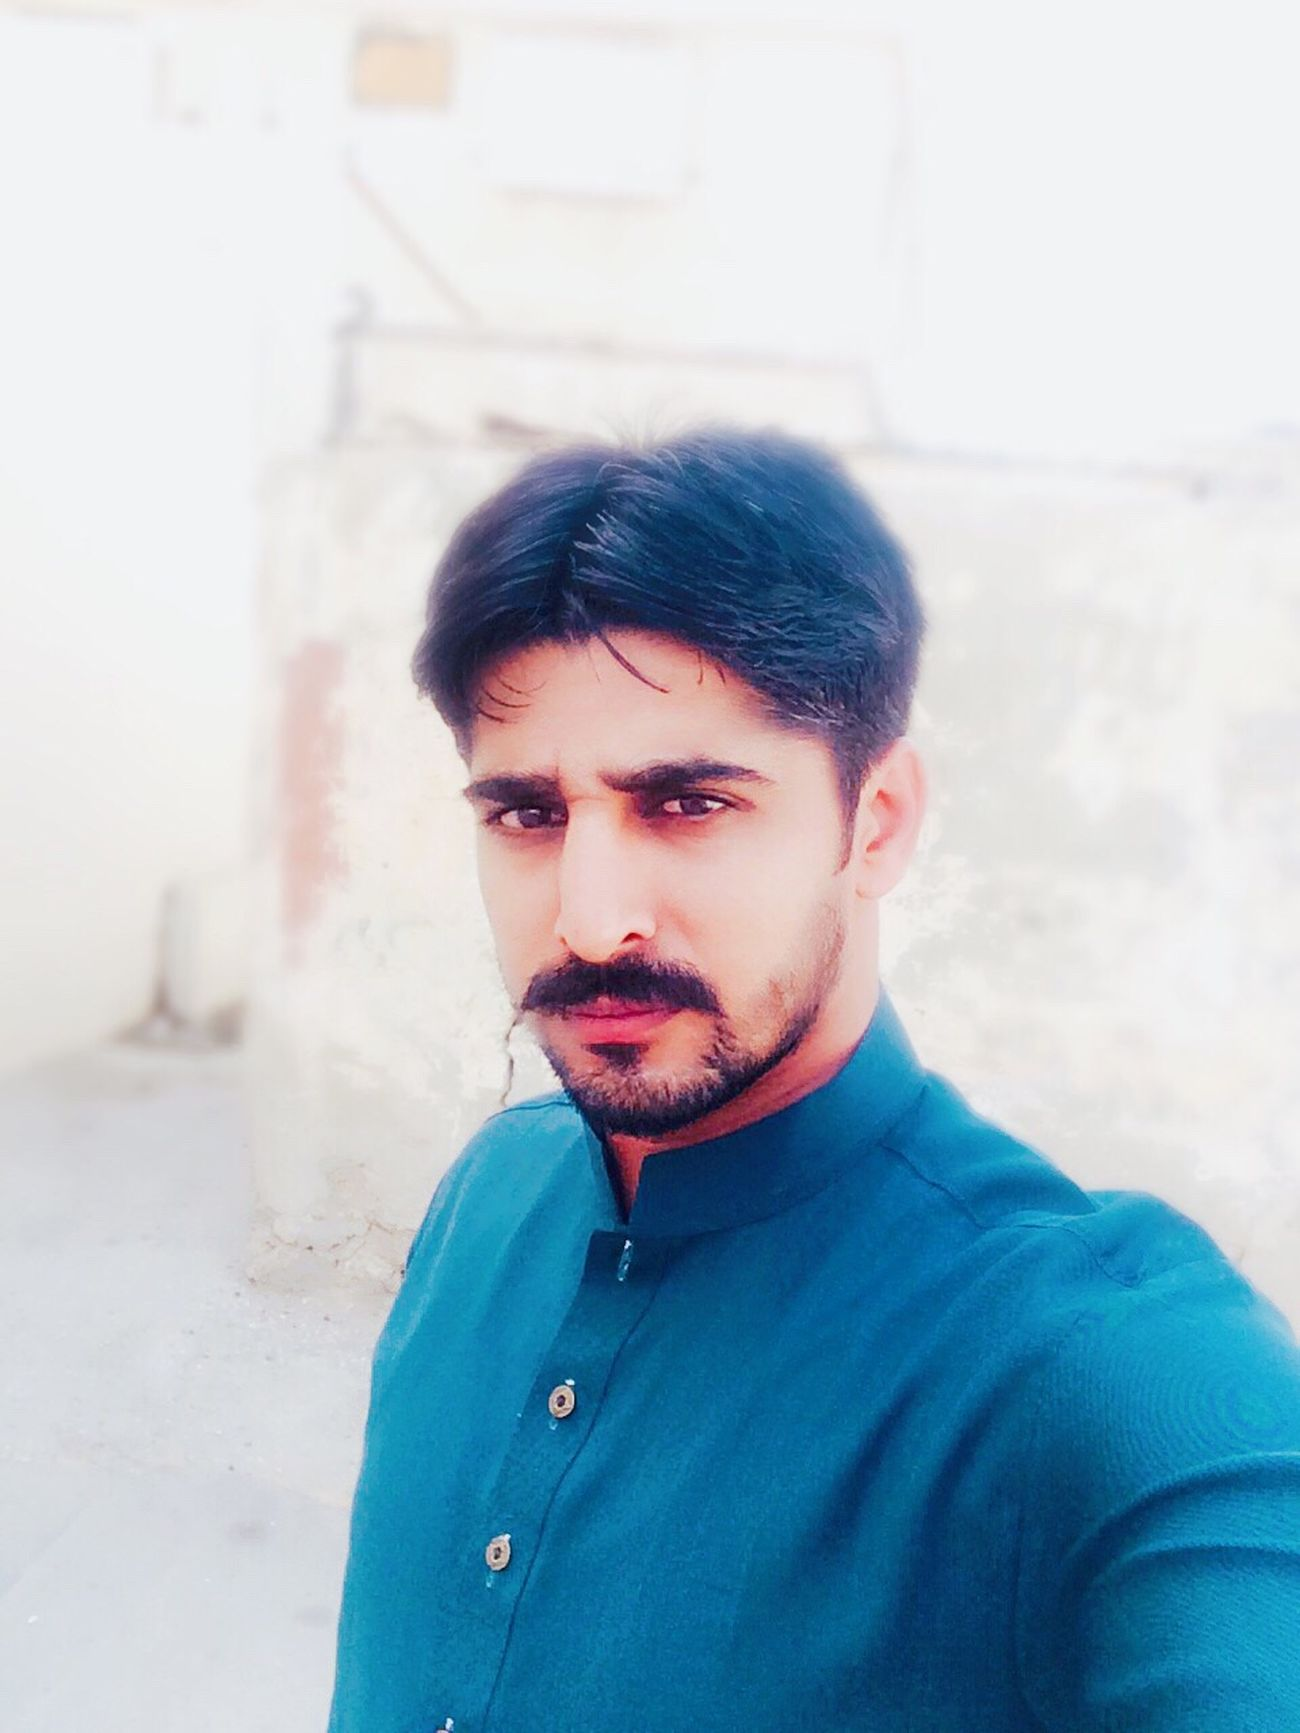 Looking At Camera Young Men Handsome With Friends Beautiful Pakistan Selfie ✌ Hi! Asian  Today's Hot Look My City Dhaunkal Enjoying Life Pakistani That's Me First Eyeem Photo